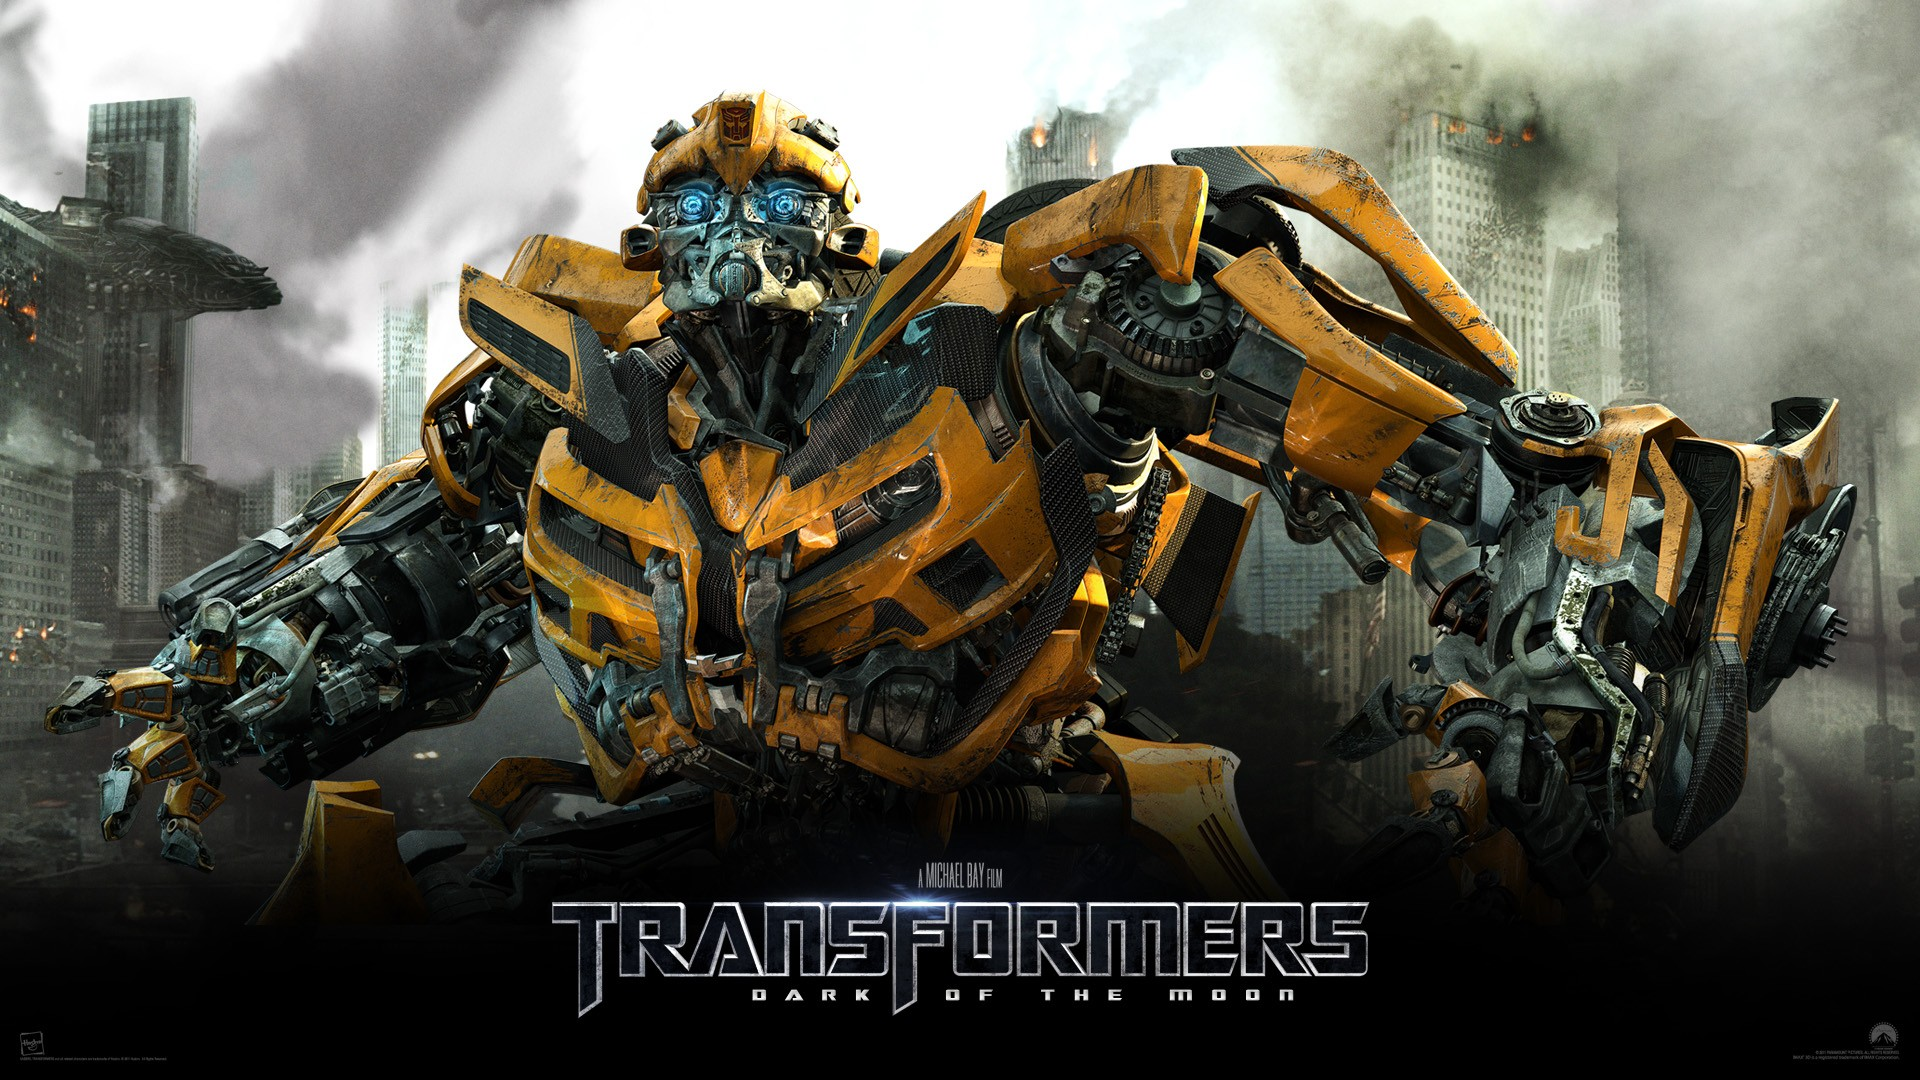 Yellow transformer from the movie Transformers: Dark of the moon